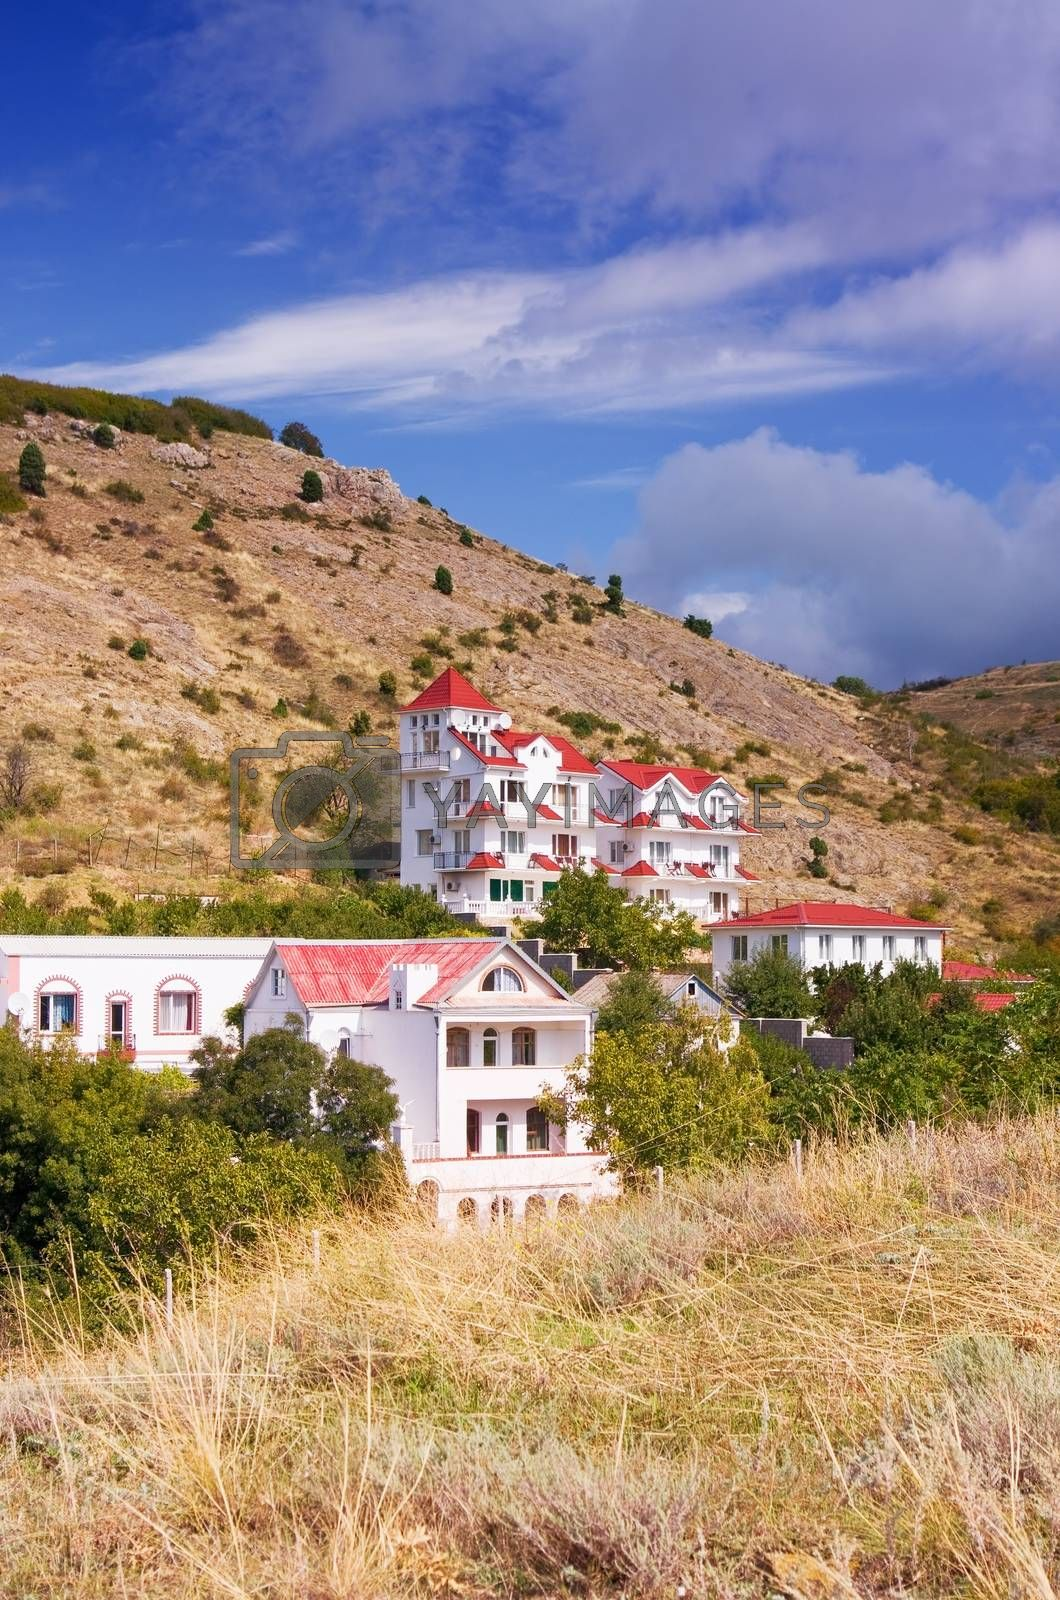 House with red roof on the hills